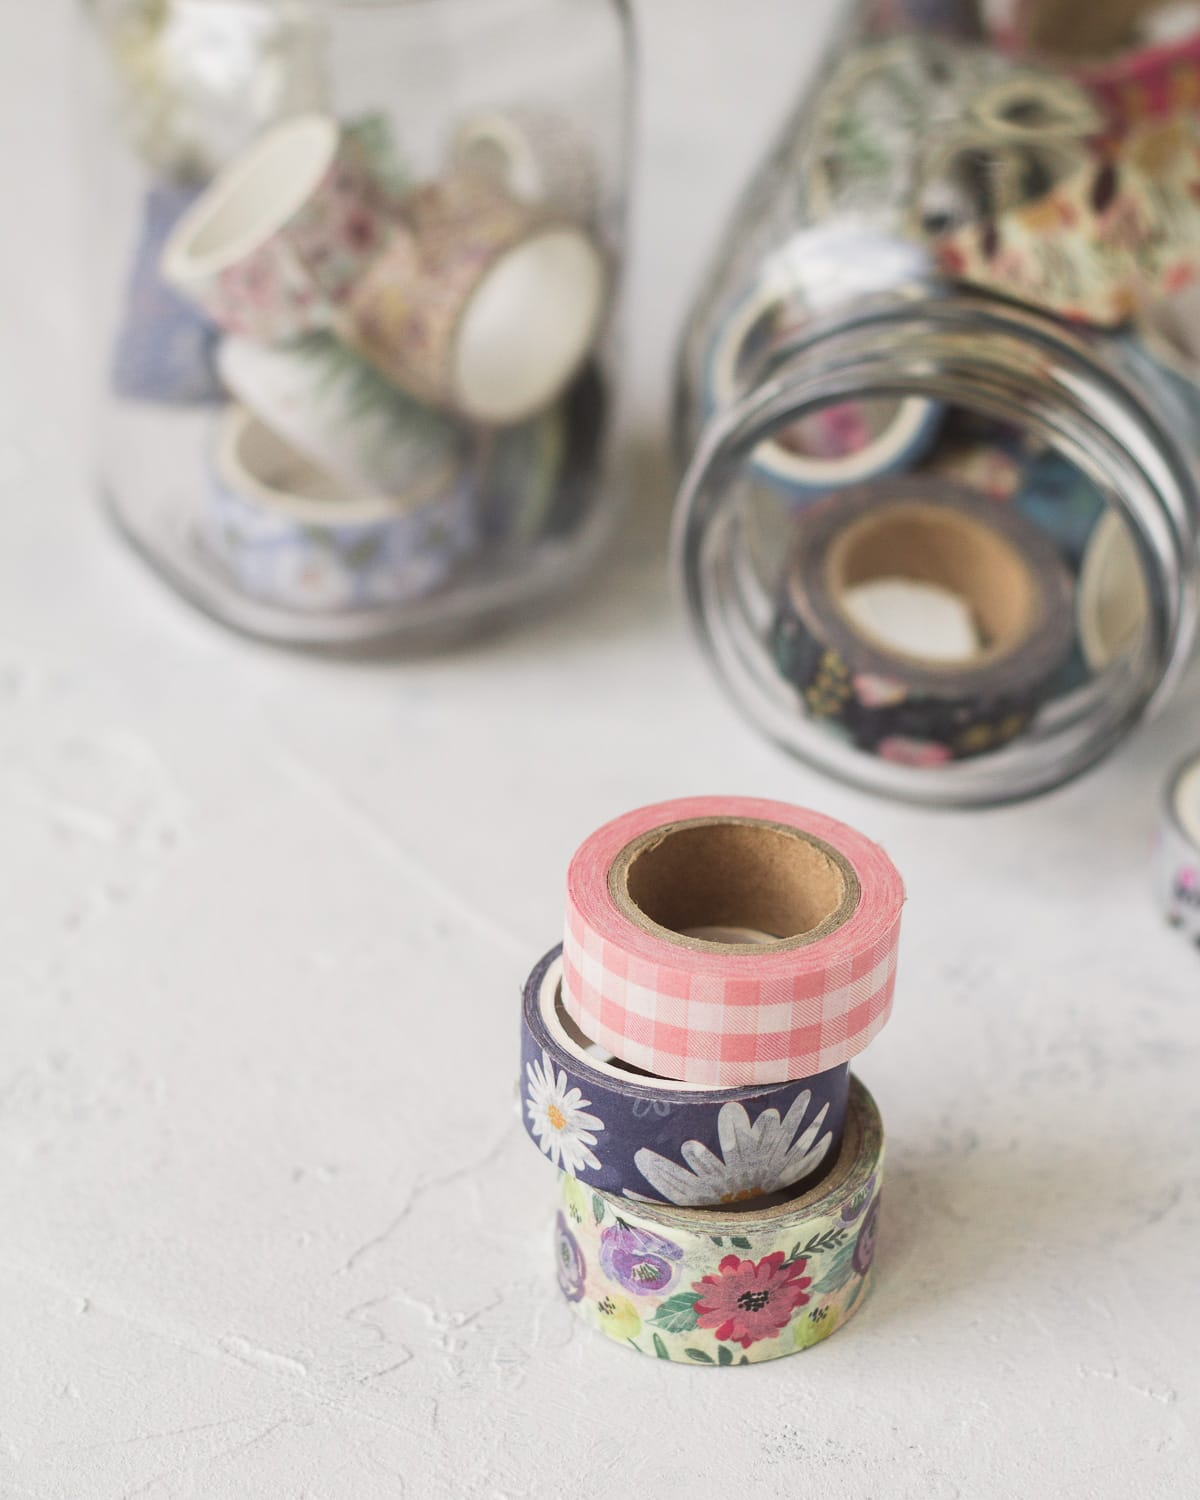 Three washi tape spools in a stack.